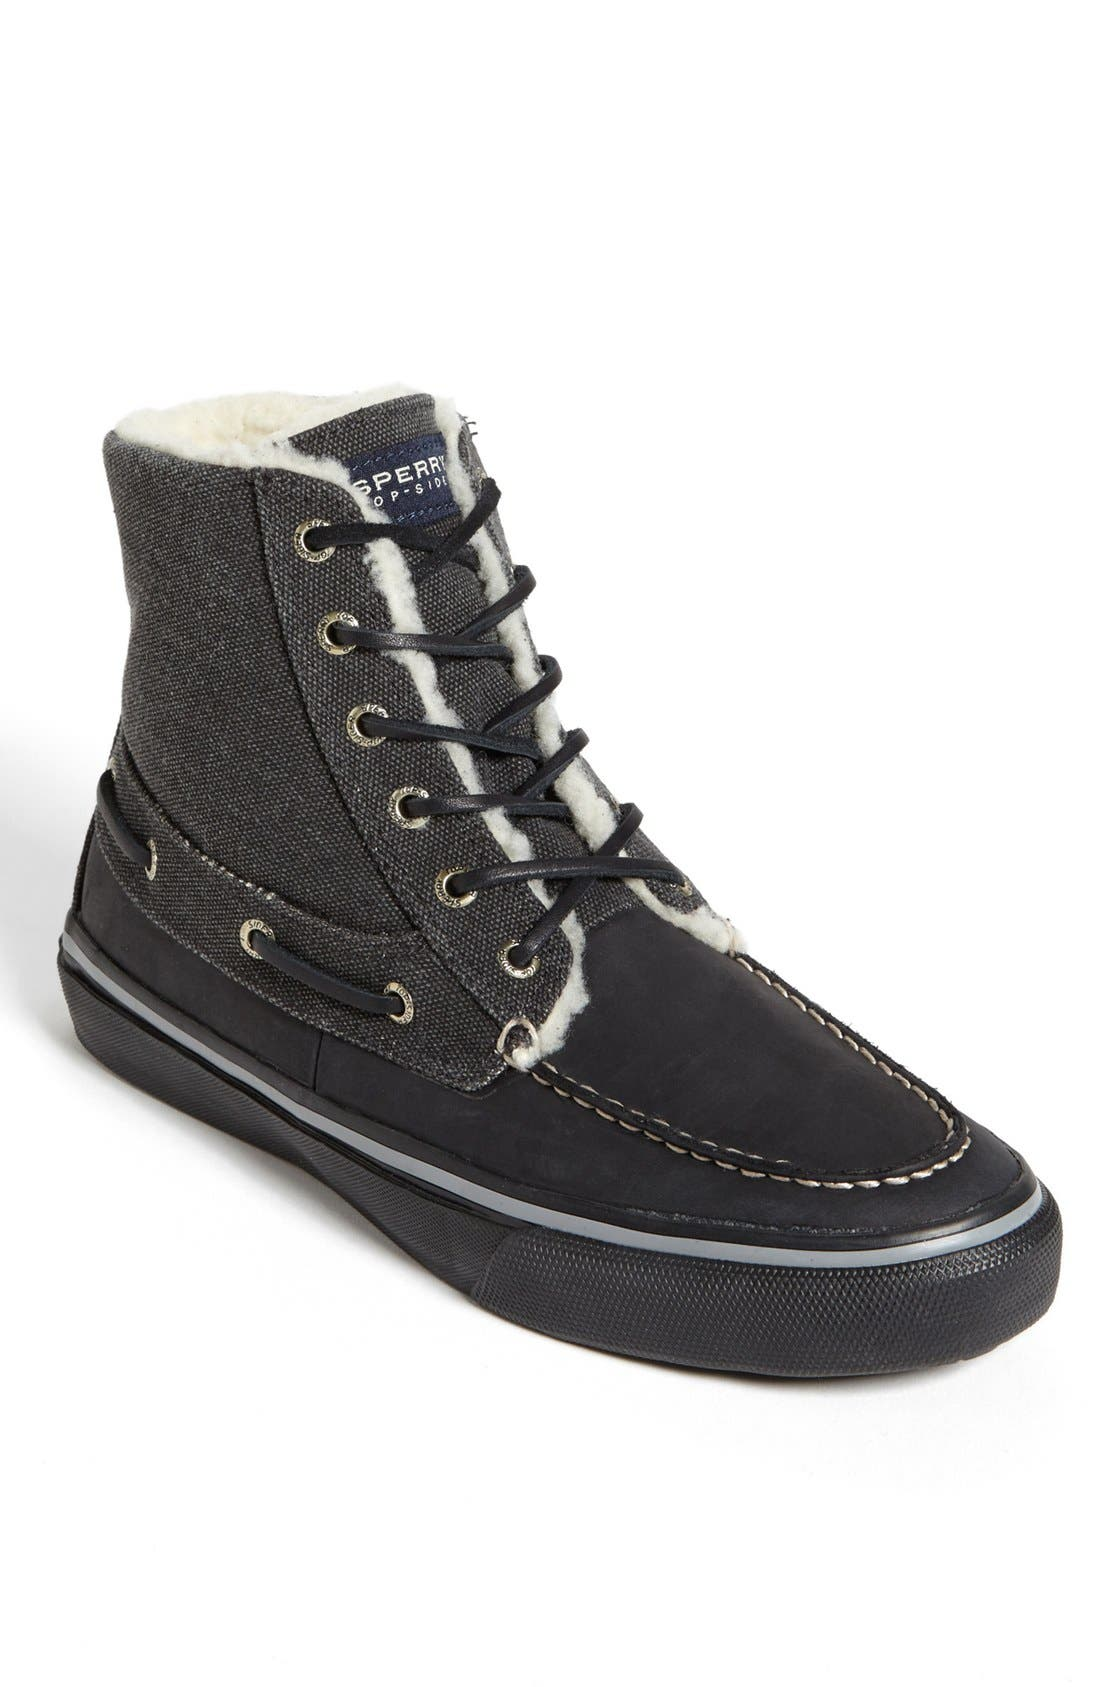 Main Image - Sperry Top-Sider® 'Bahama' Boot